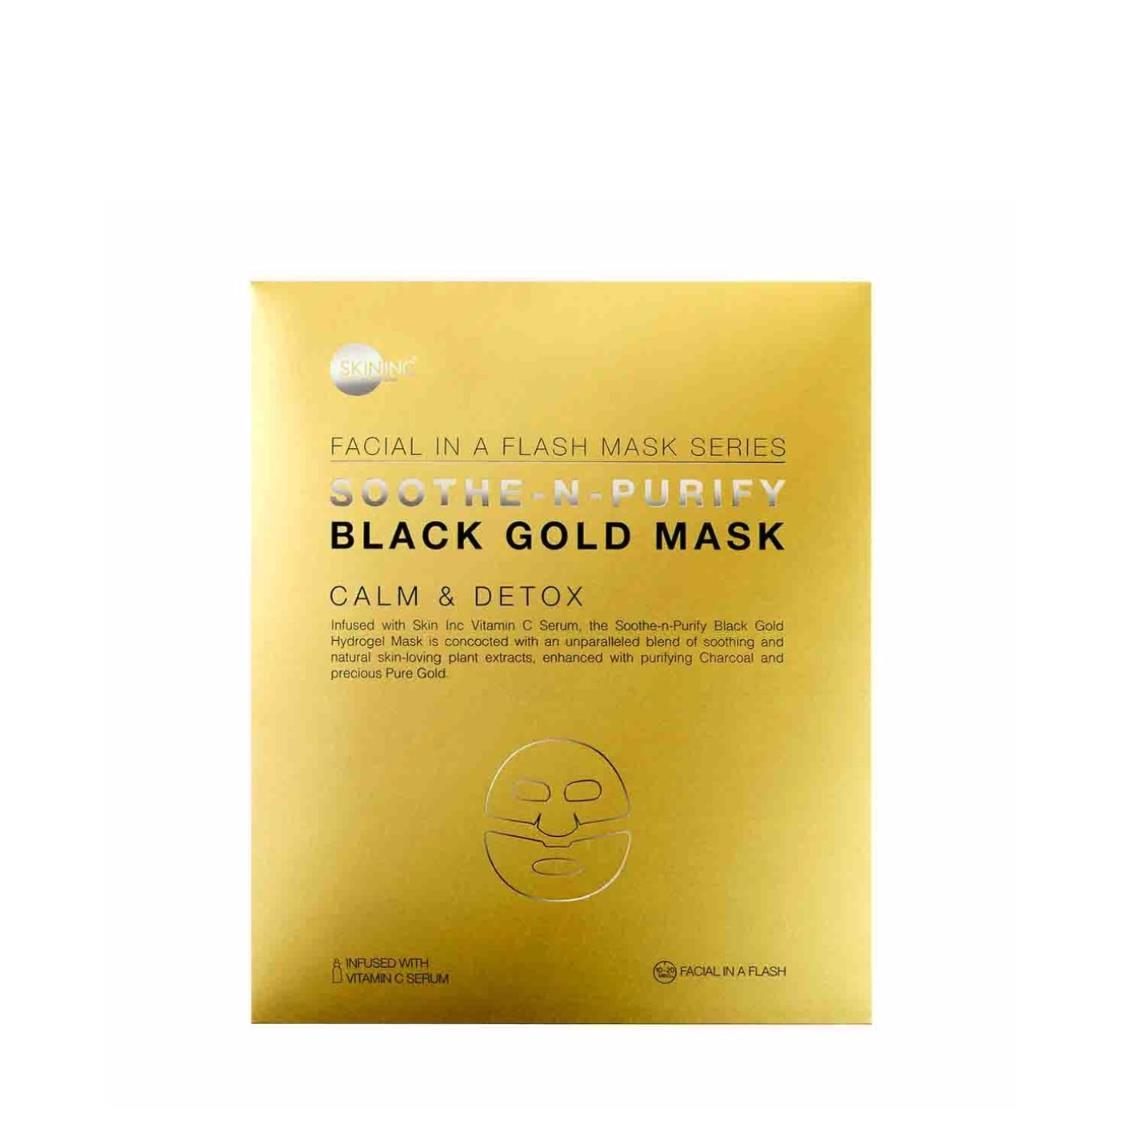 Soothe-n-Purify Black Gold Mask single